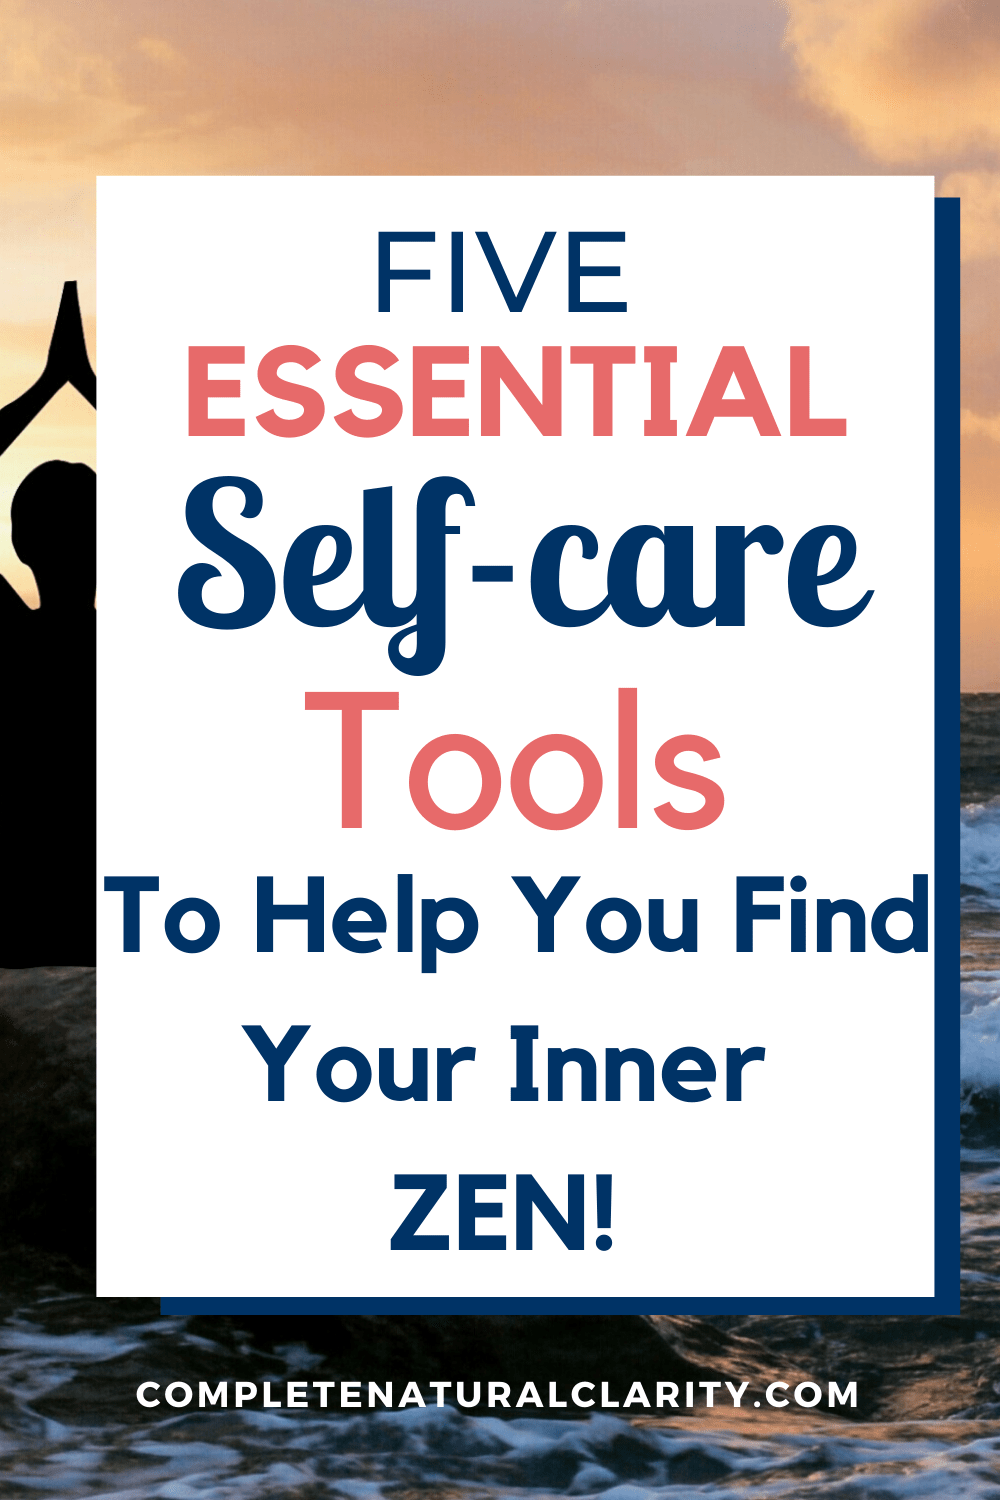 5 Essential Self-care Tools to Help You Find Your Inner Zen!